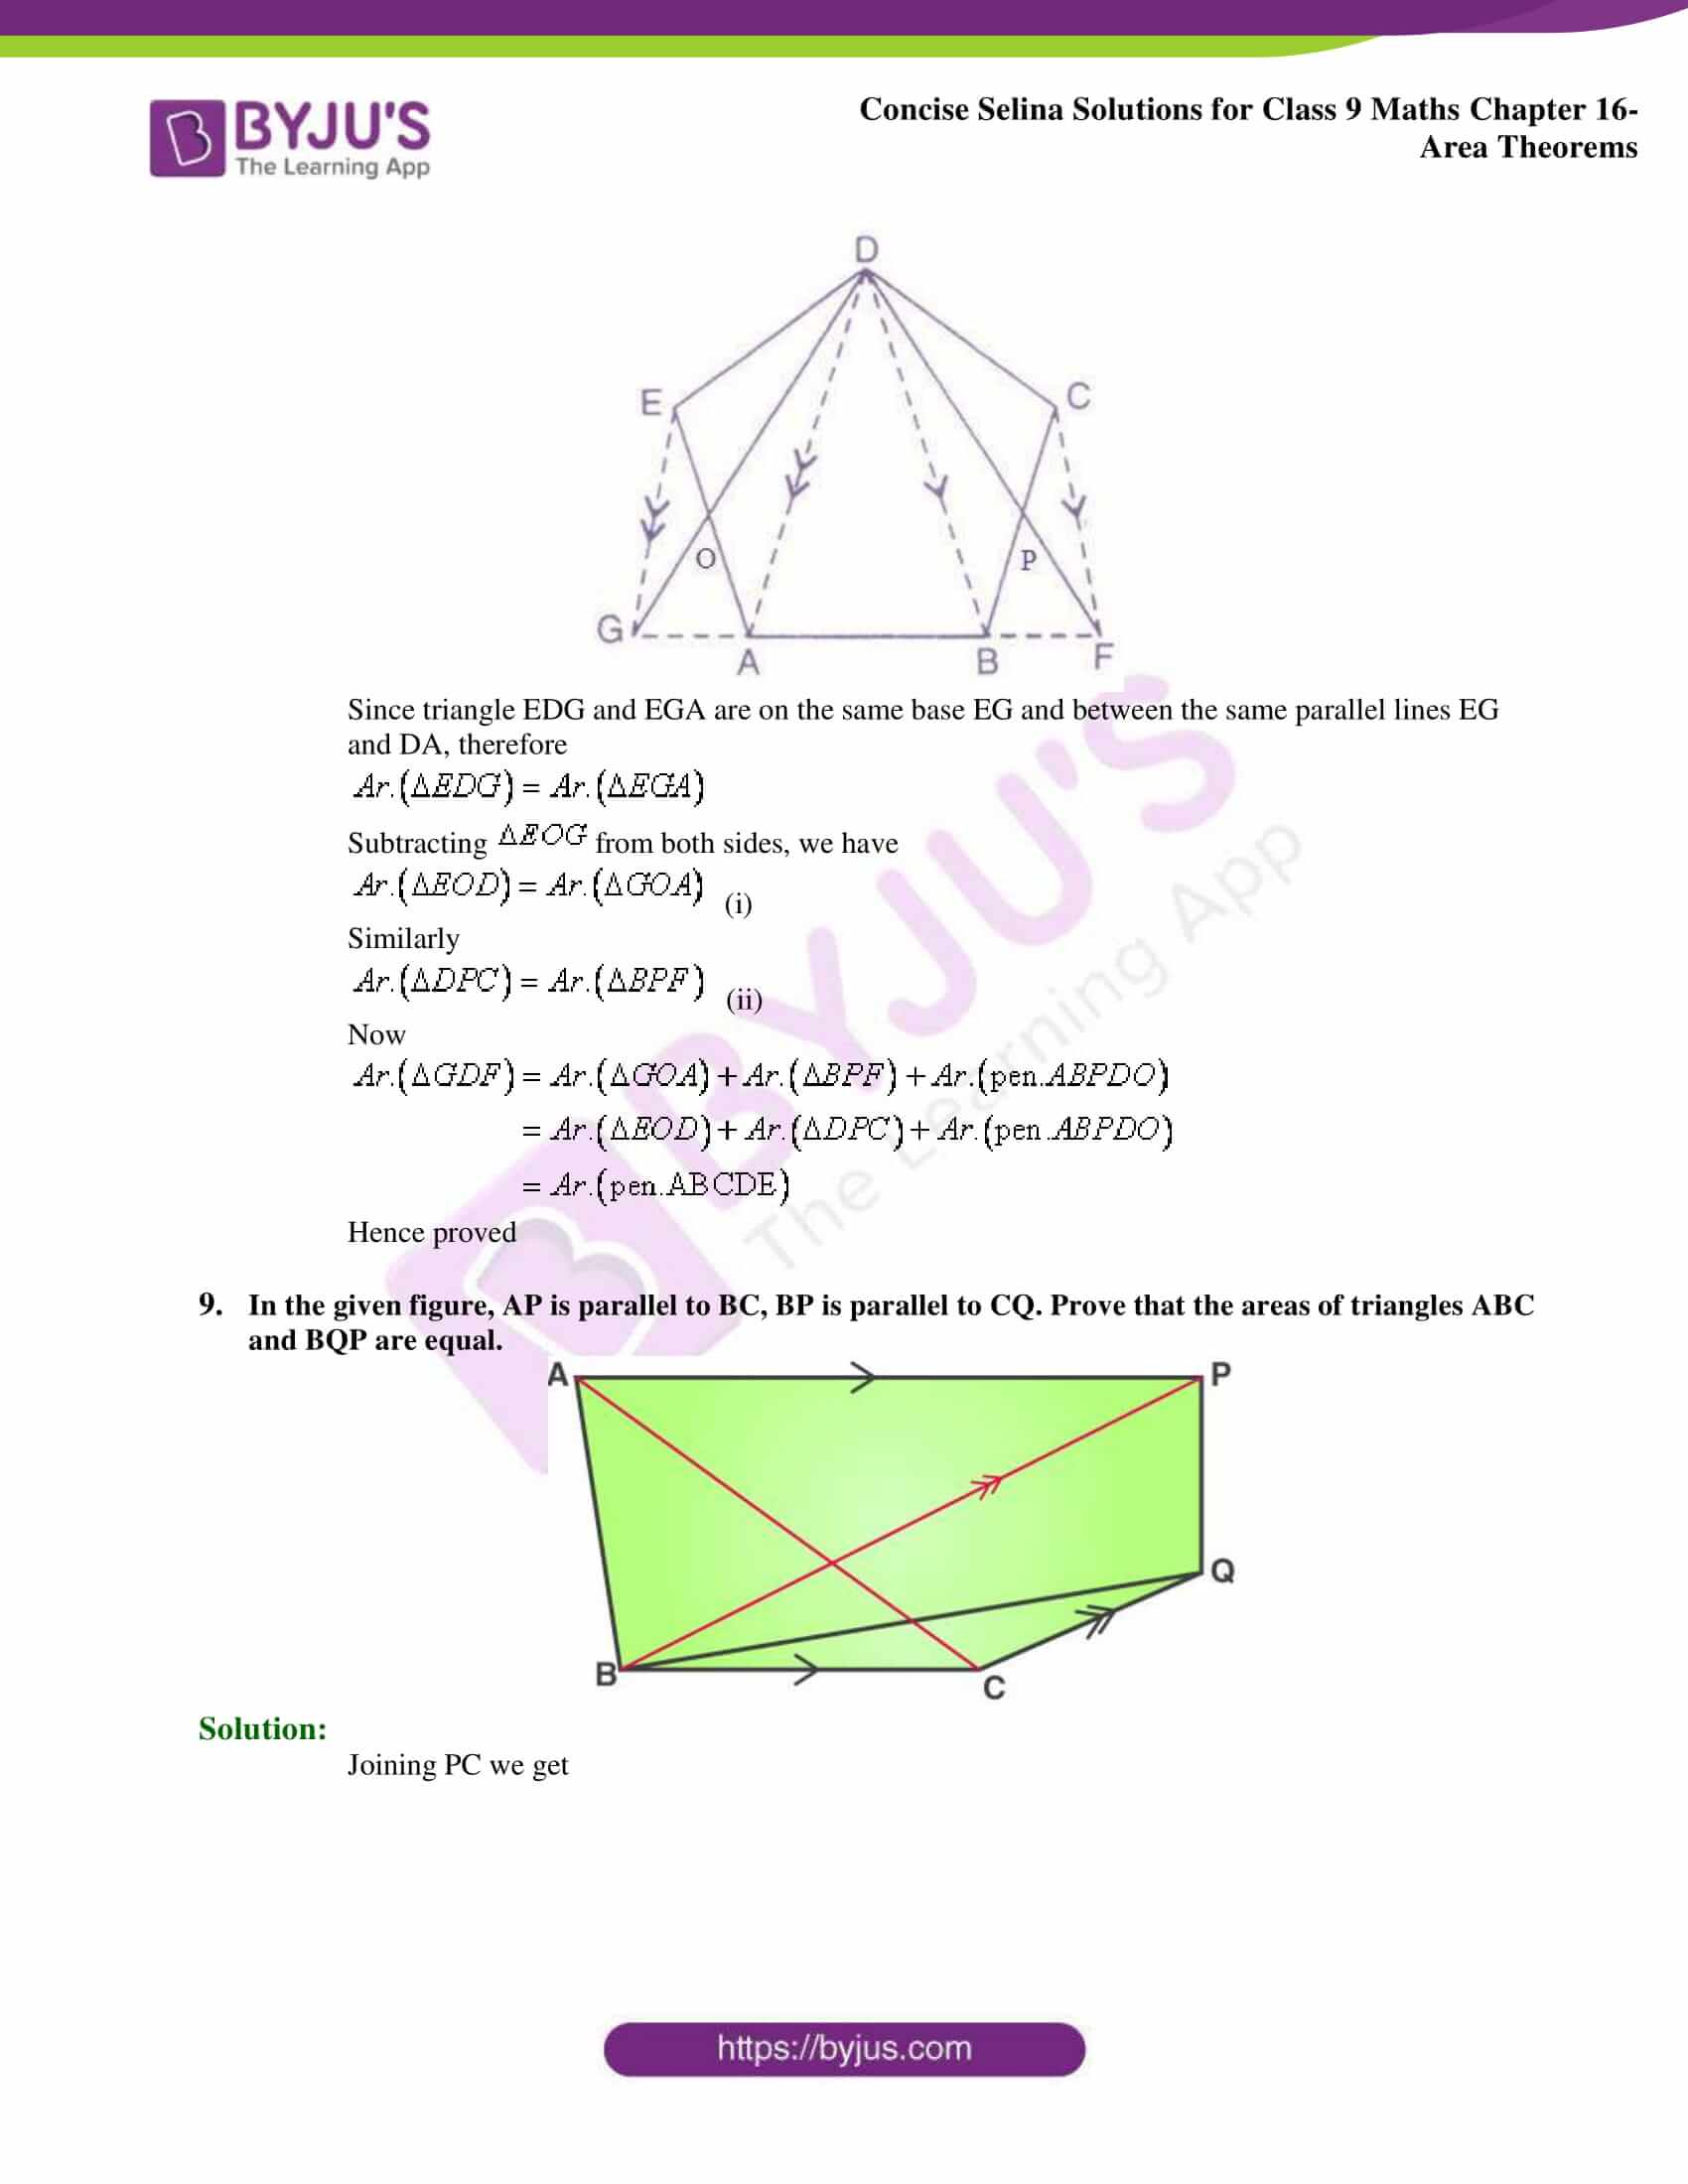 Concise Selina Solutions Class 9 Maths Chapter 16 Area Theorems part 07